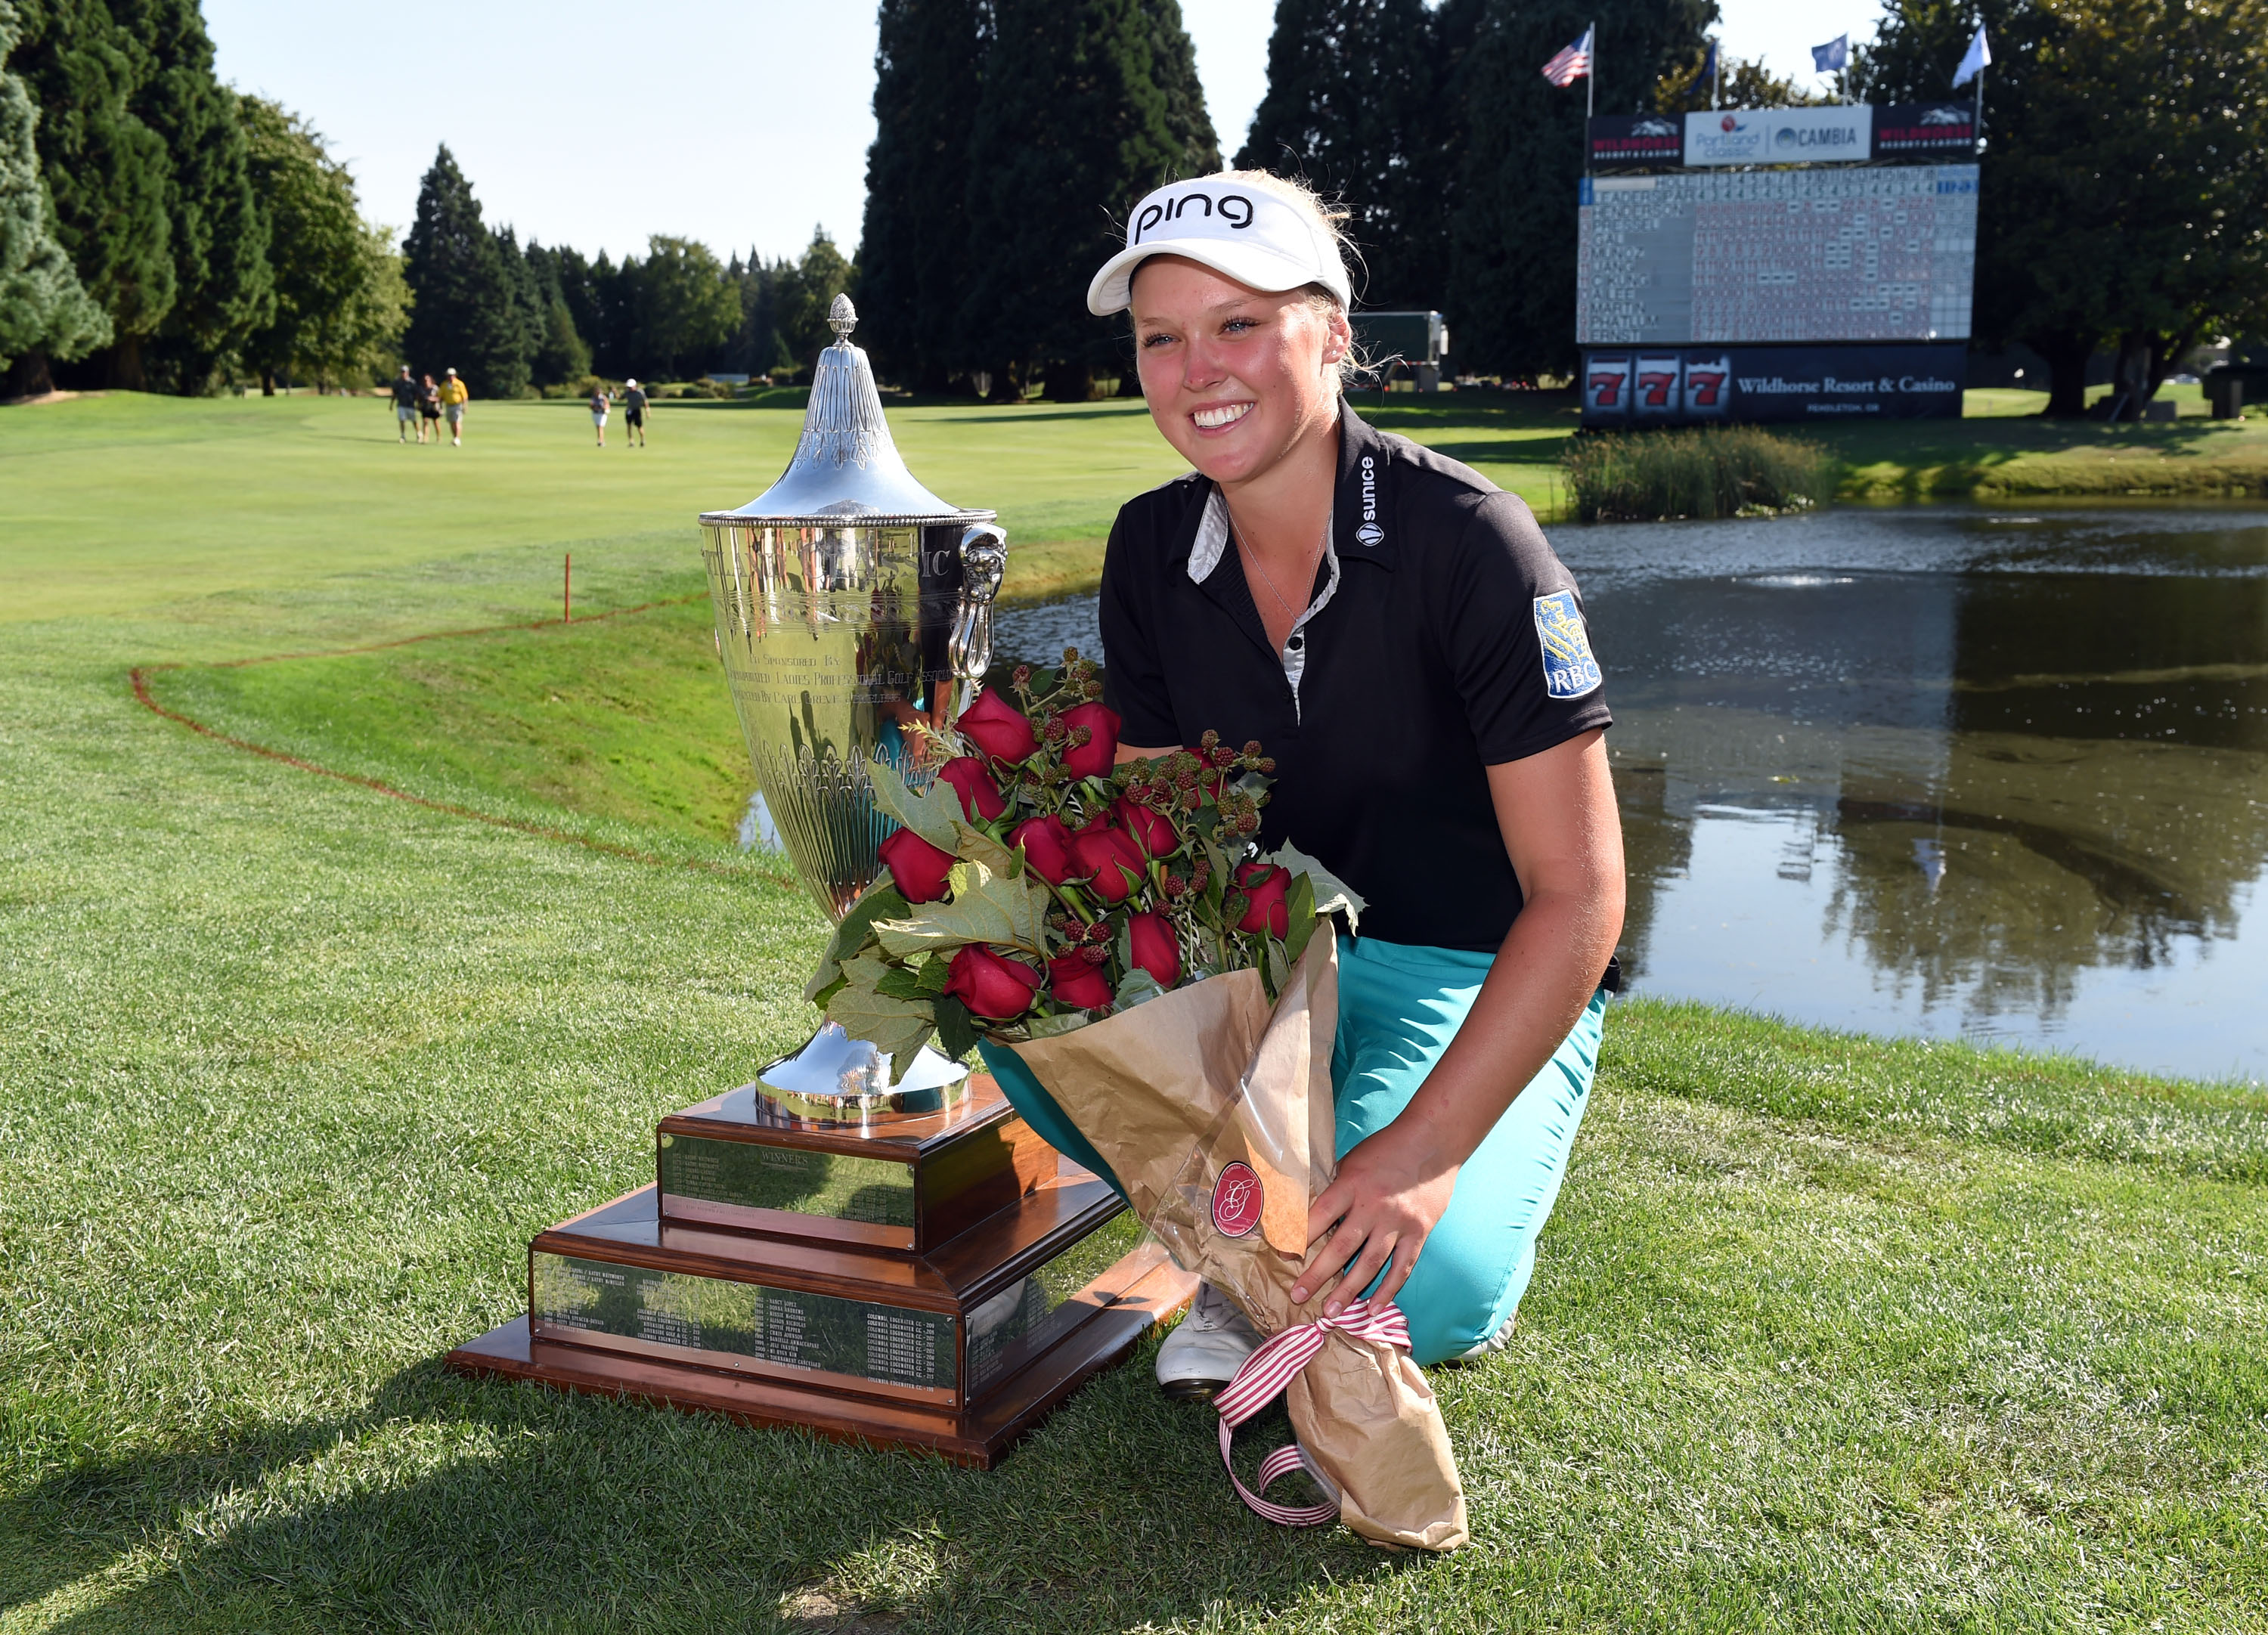 Brooke Henderson, of Canada, poses with the trophy on the 18th hole after winning the Cambia Portland Classic in Portland, Oregon, on Sunday.